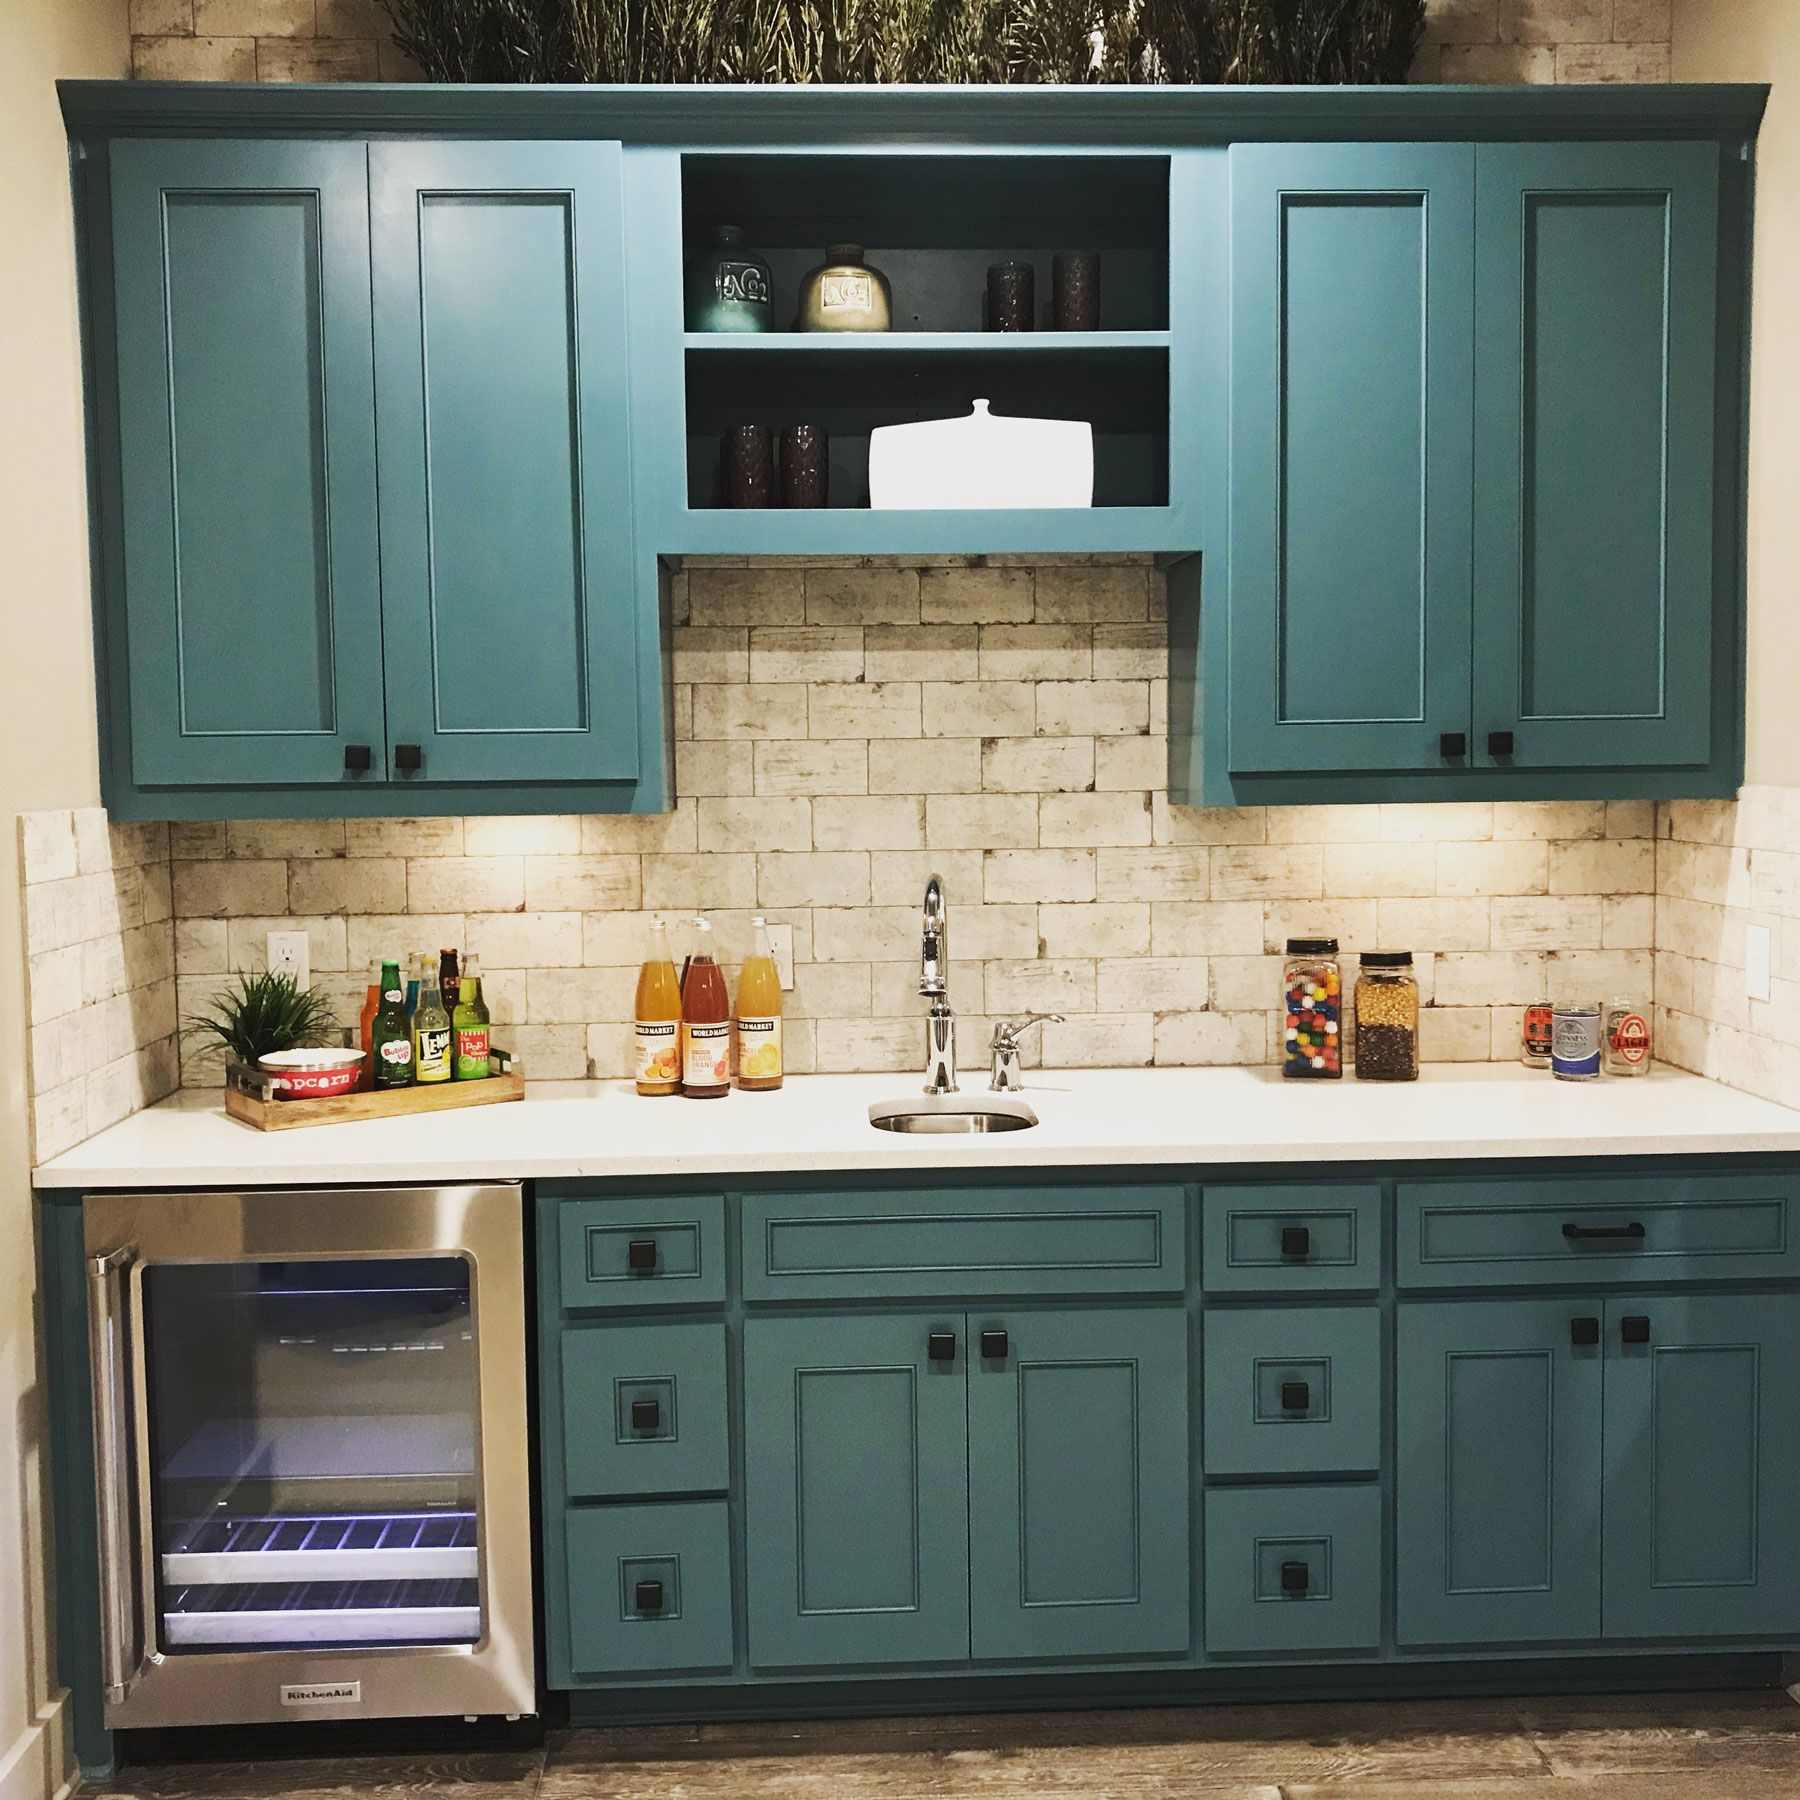 Wet Bar Blue Green Cabinets Taylorcraft Cabinet Door Company Beautiful Kitchen Cabinets Kitchen Cabinet Doors Green Kitchen Cabinets